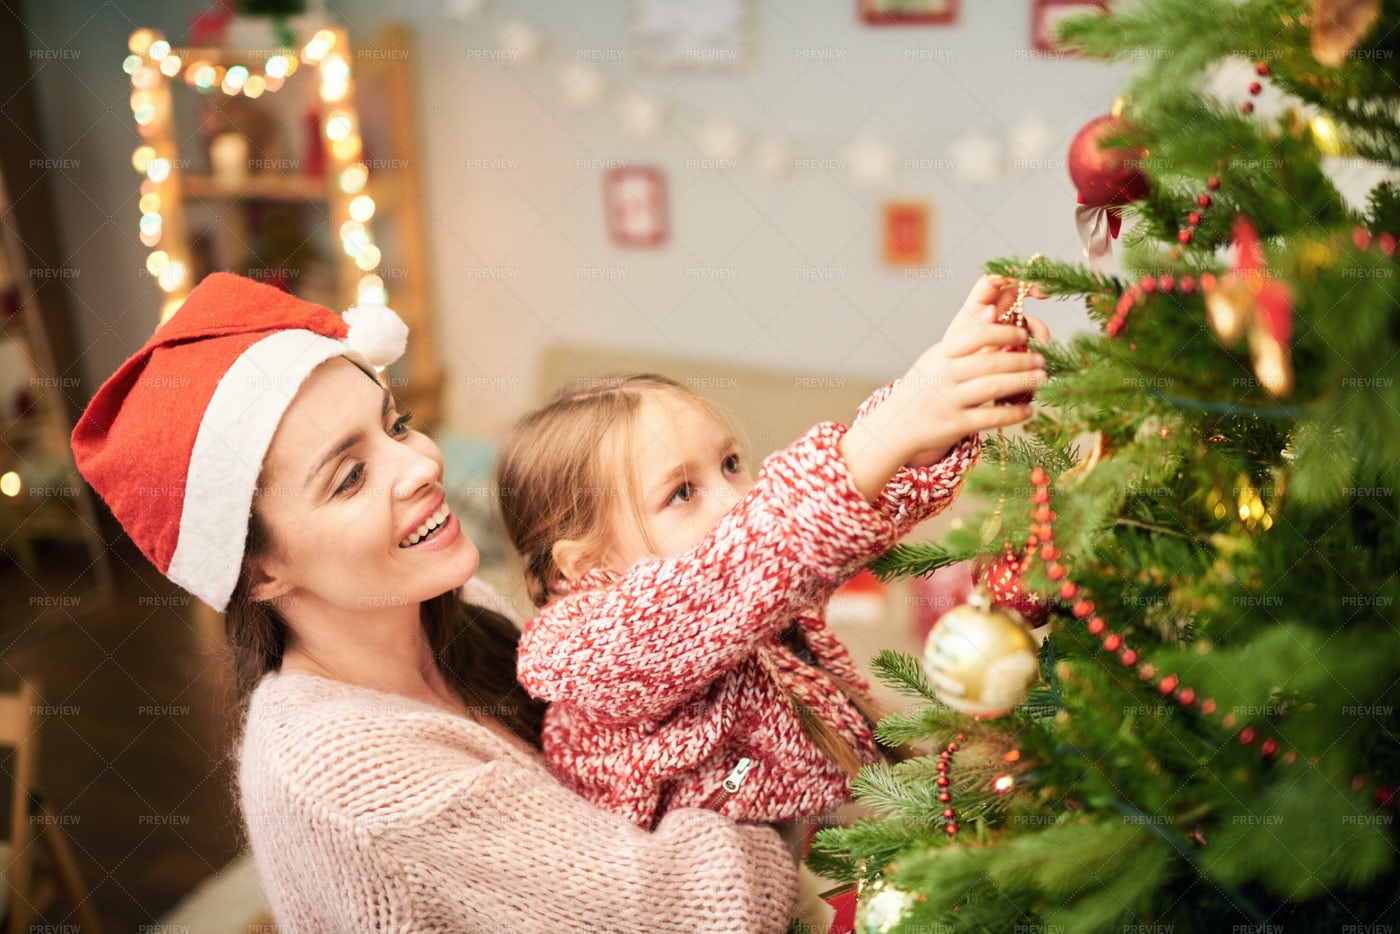 Family Of Two Decorating Christmas...: Stock Photos